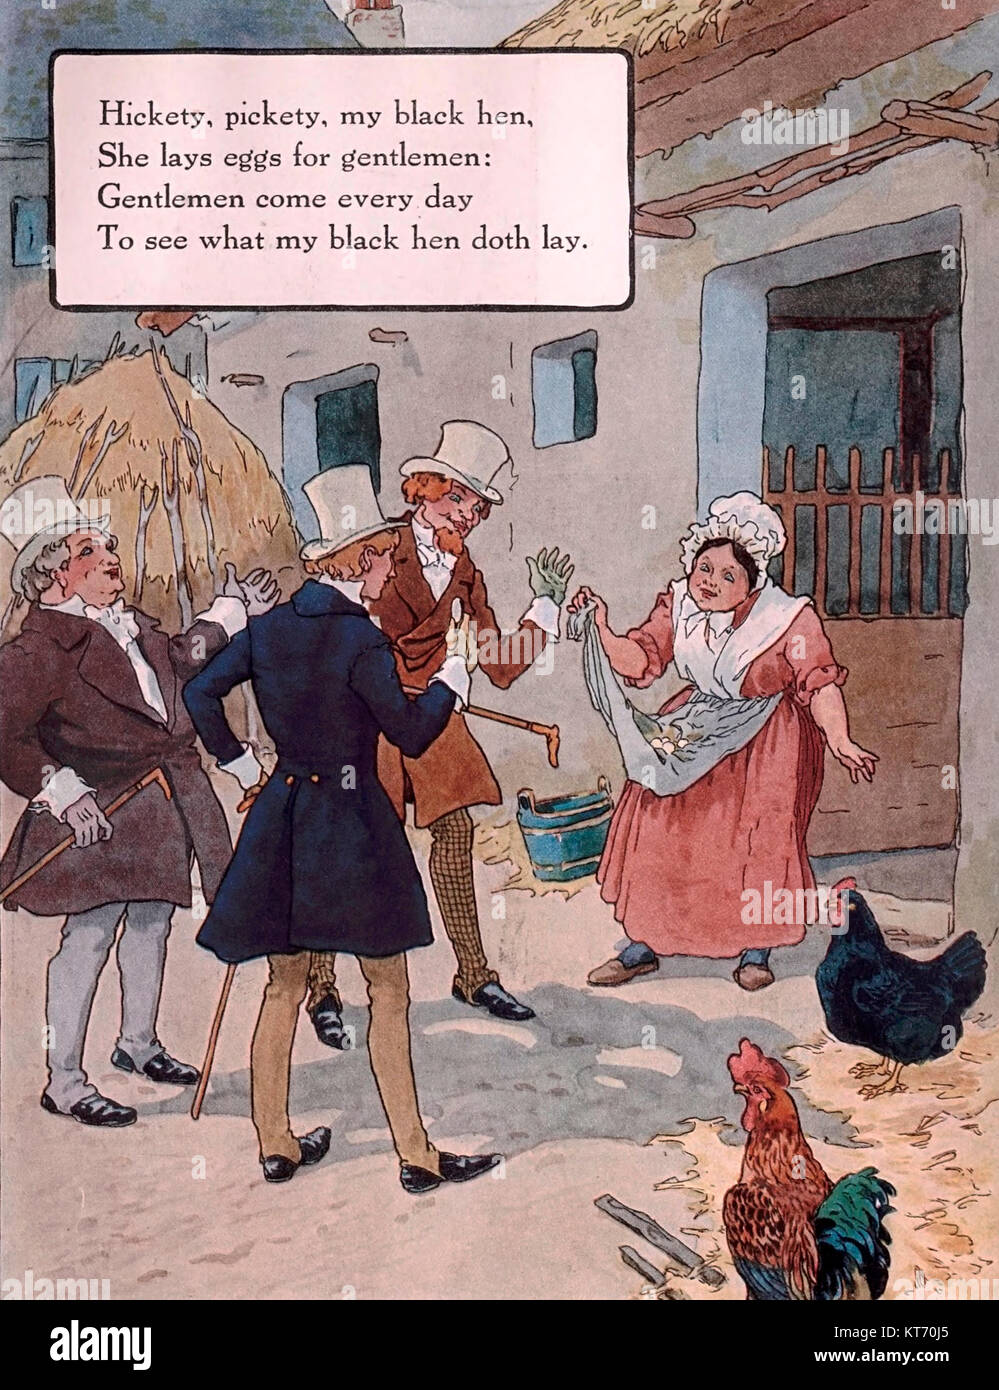 Hickety, Pickety, my black hen, she lays eggs for gentlemen - Mother Goose Nursery Rhyme - Stock Image